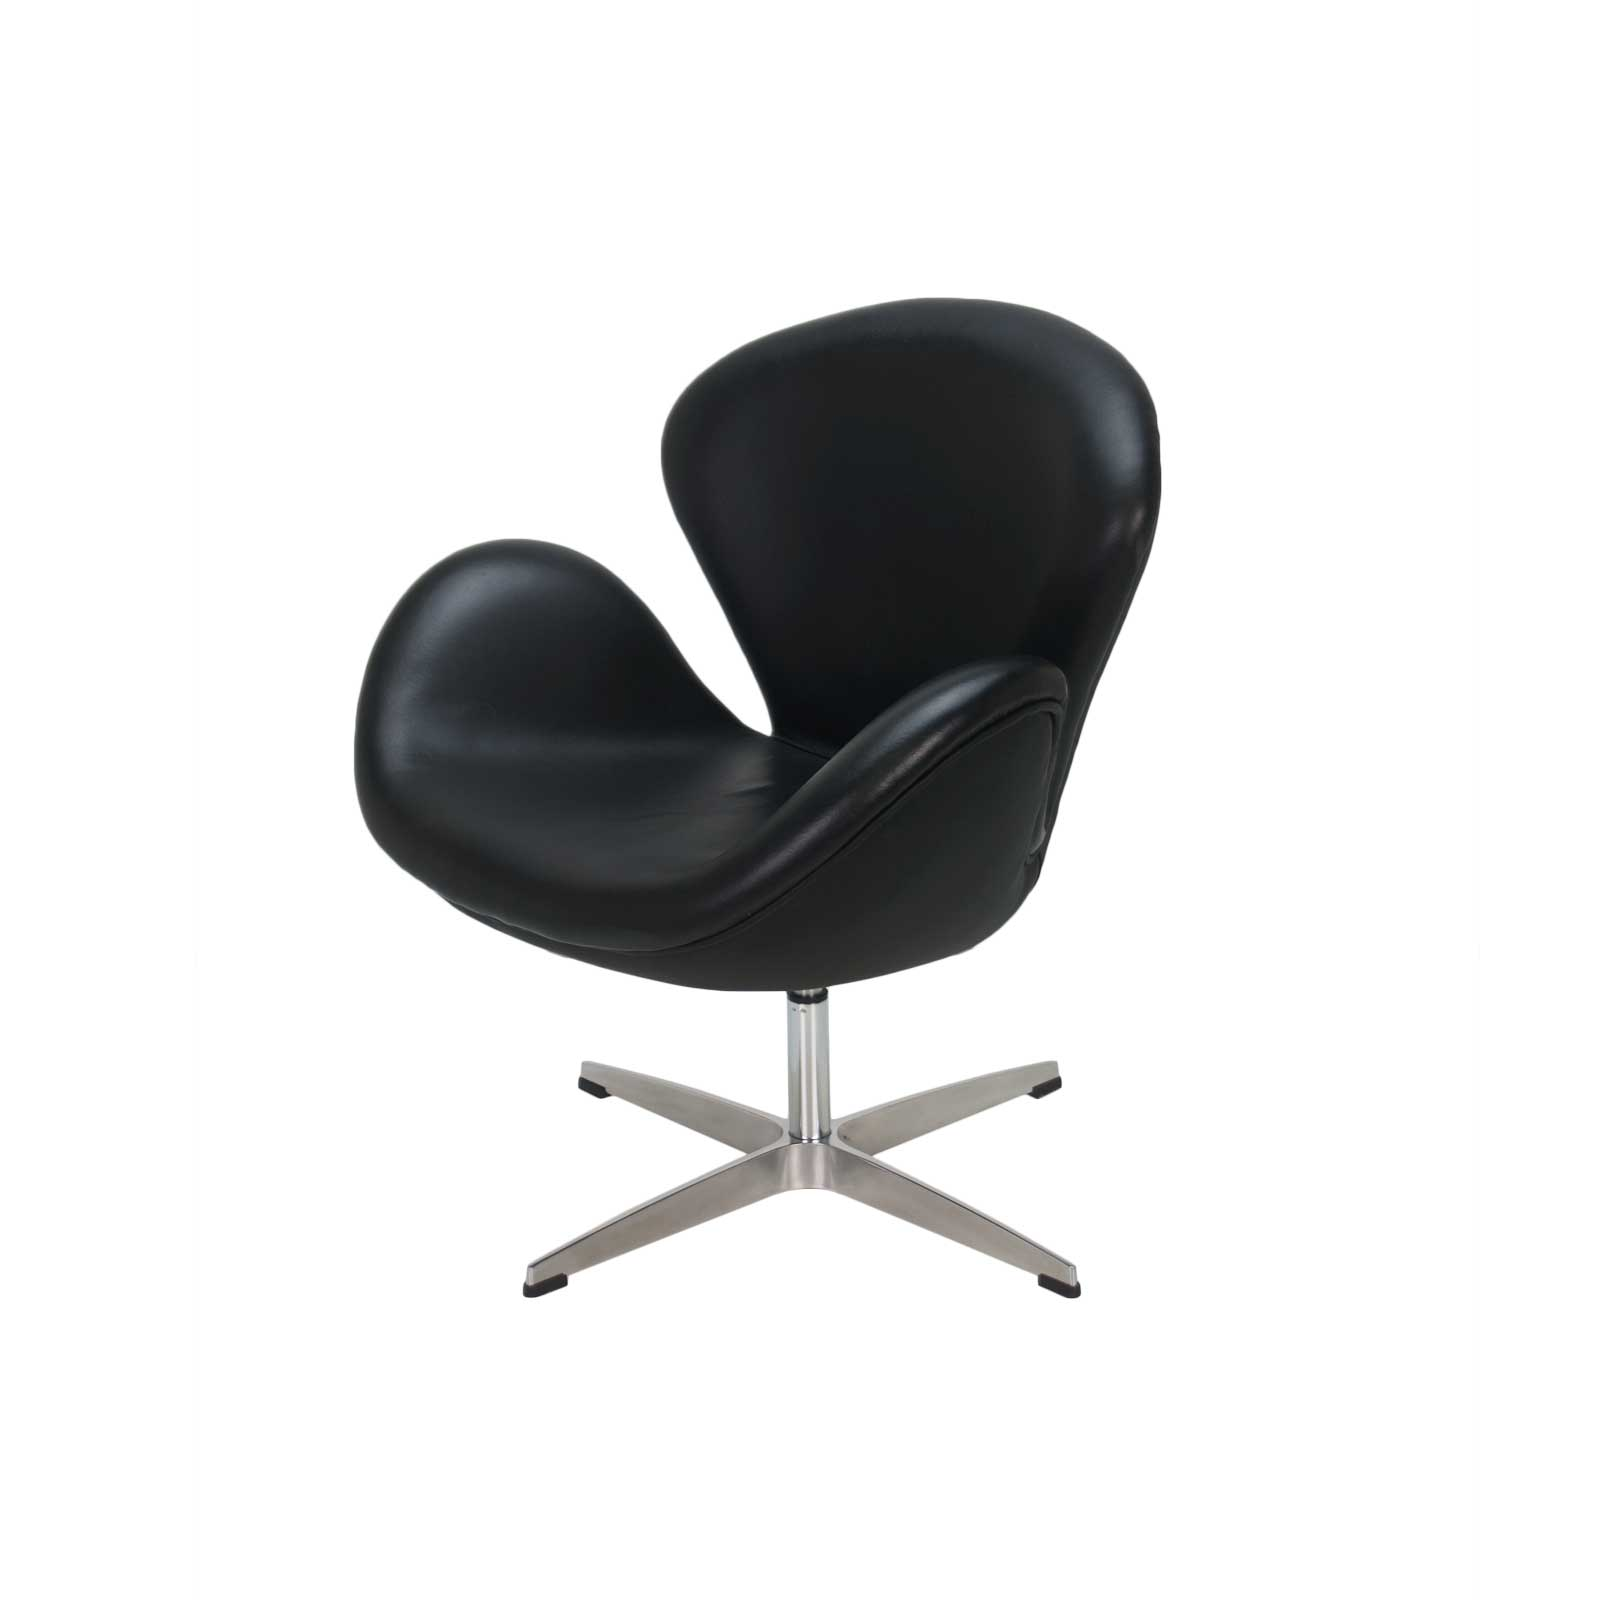 Arne Jacobsen Egg Chair Ebay Jacobsen Swan Chair Leather Arne Jacobsen Style Swan